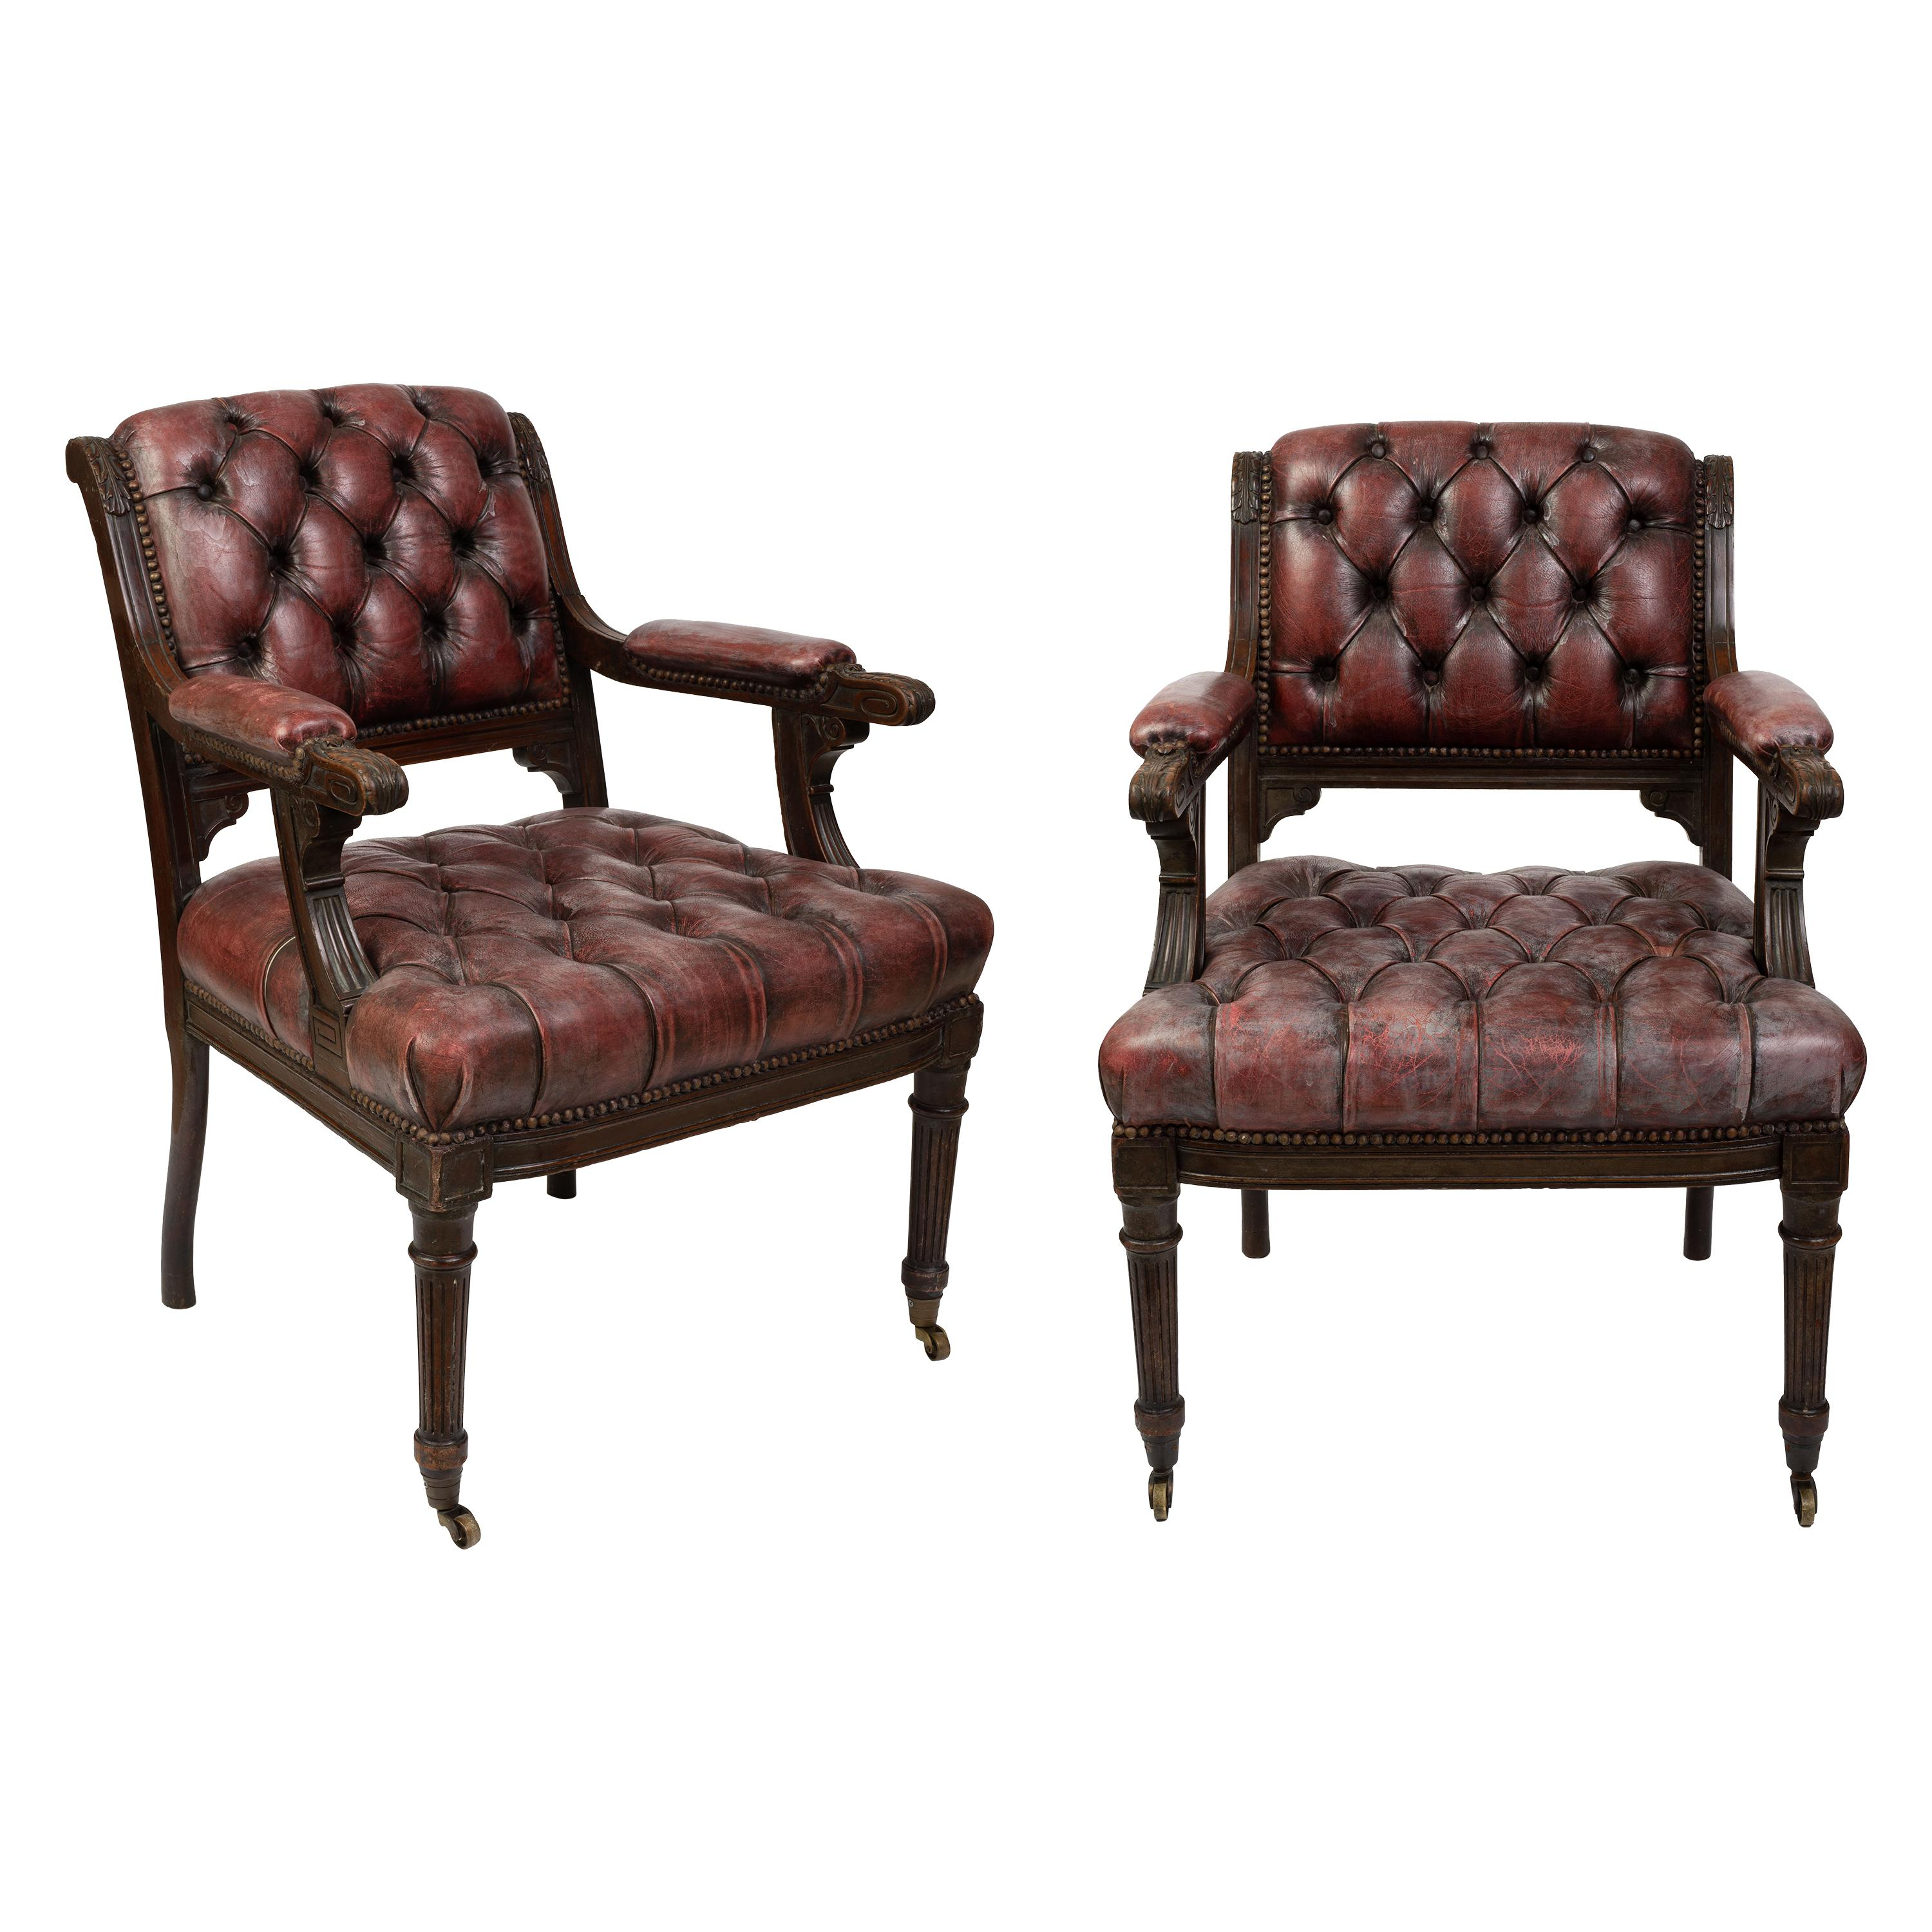 Pair of Regency Mahogany Library Armchairs